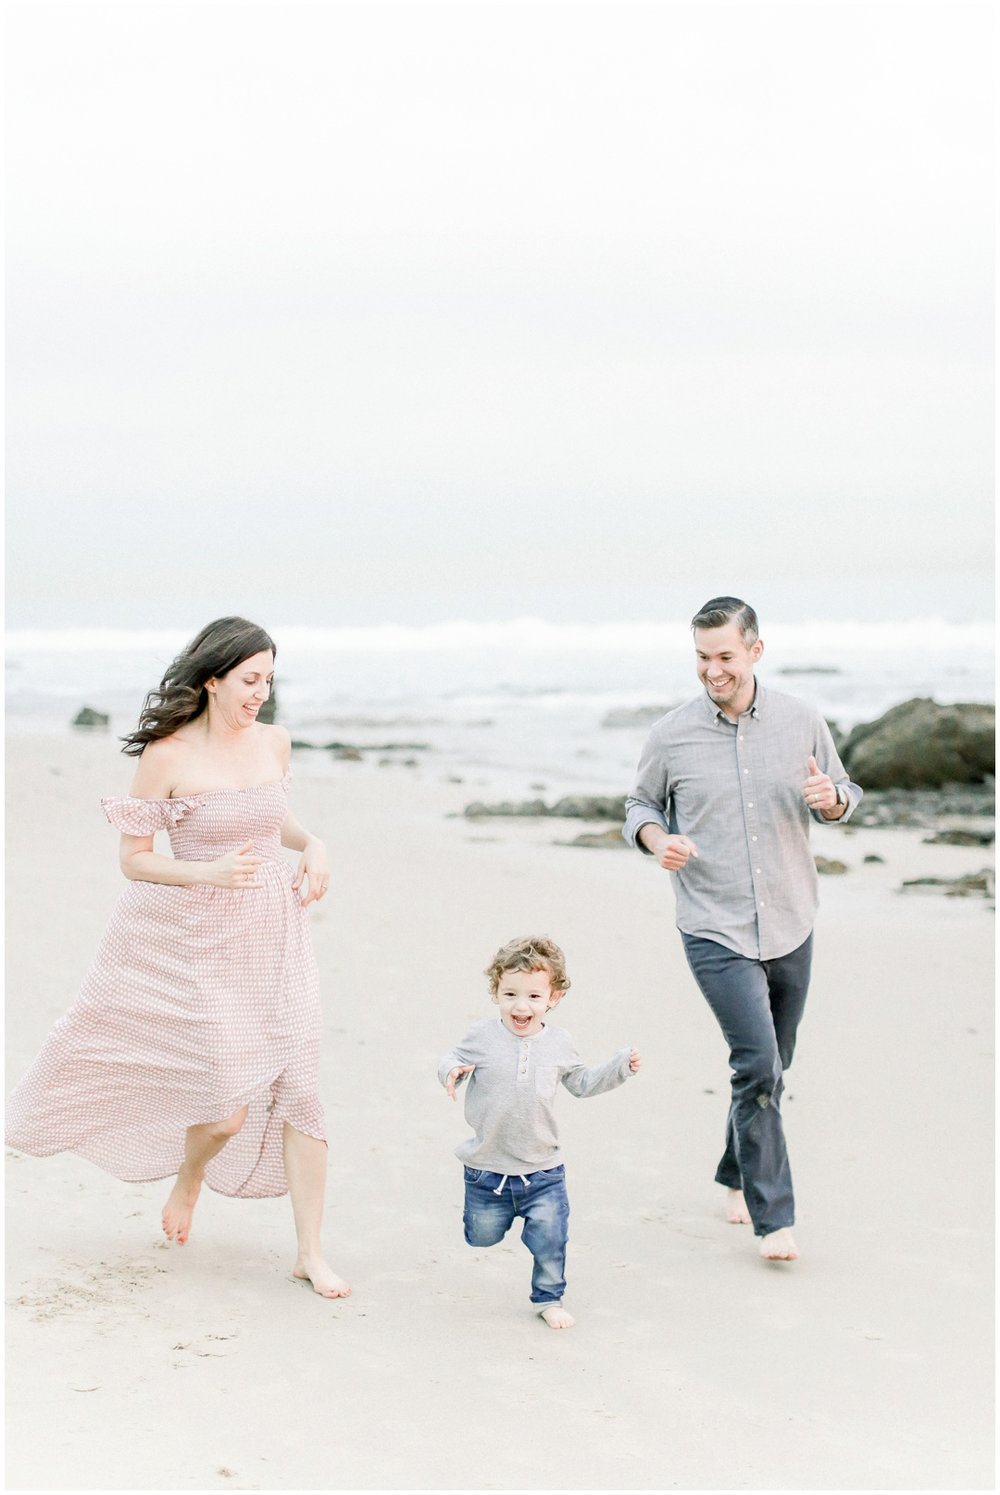 Orange_County_Family_Photographer_Newport_Beach_Family_Photographer_Newport_Beach_Newborn_Photographer_Orange_County_Family_Photographer_Cori_Kleckner_Photography_Huntington_Beach_Photographer_Asher_Family_2615.jpg